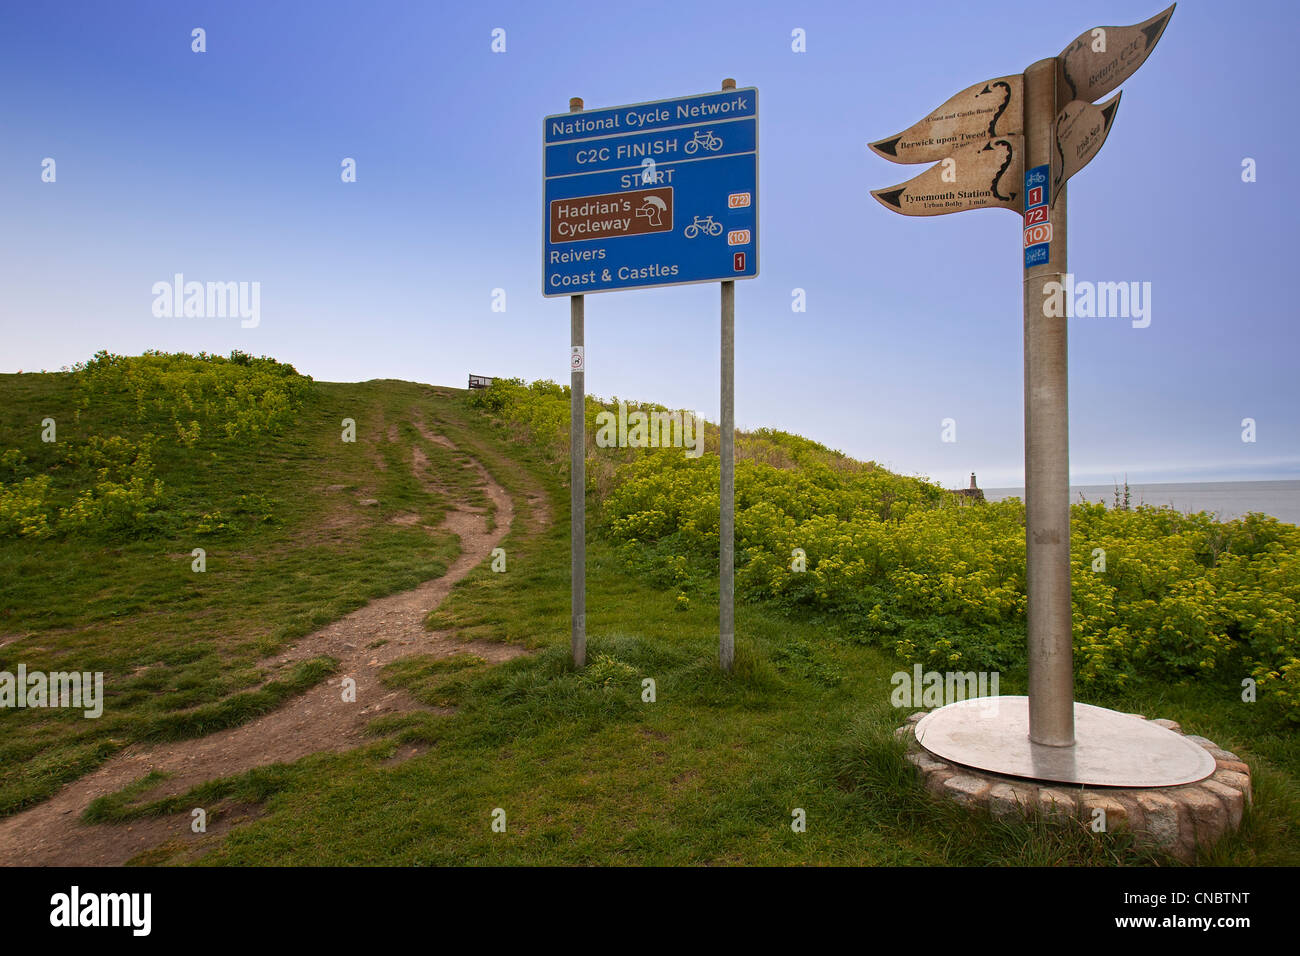 The start of the Hadrian's Cycleway, the national cycle network, Tynemouth, England, UK - Stock Image